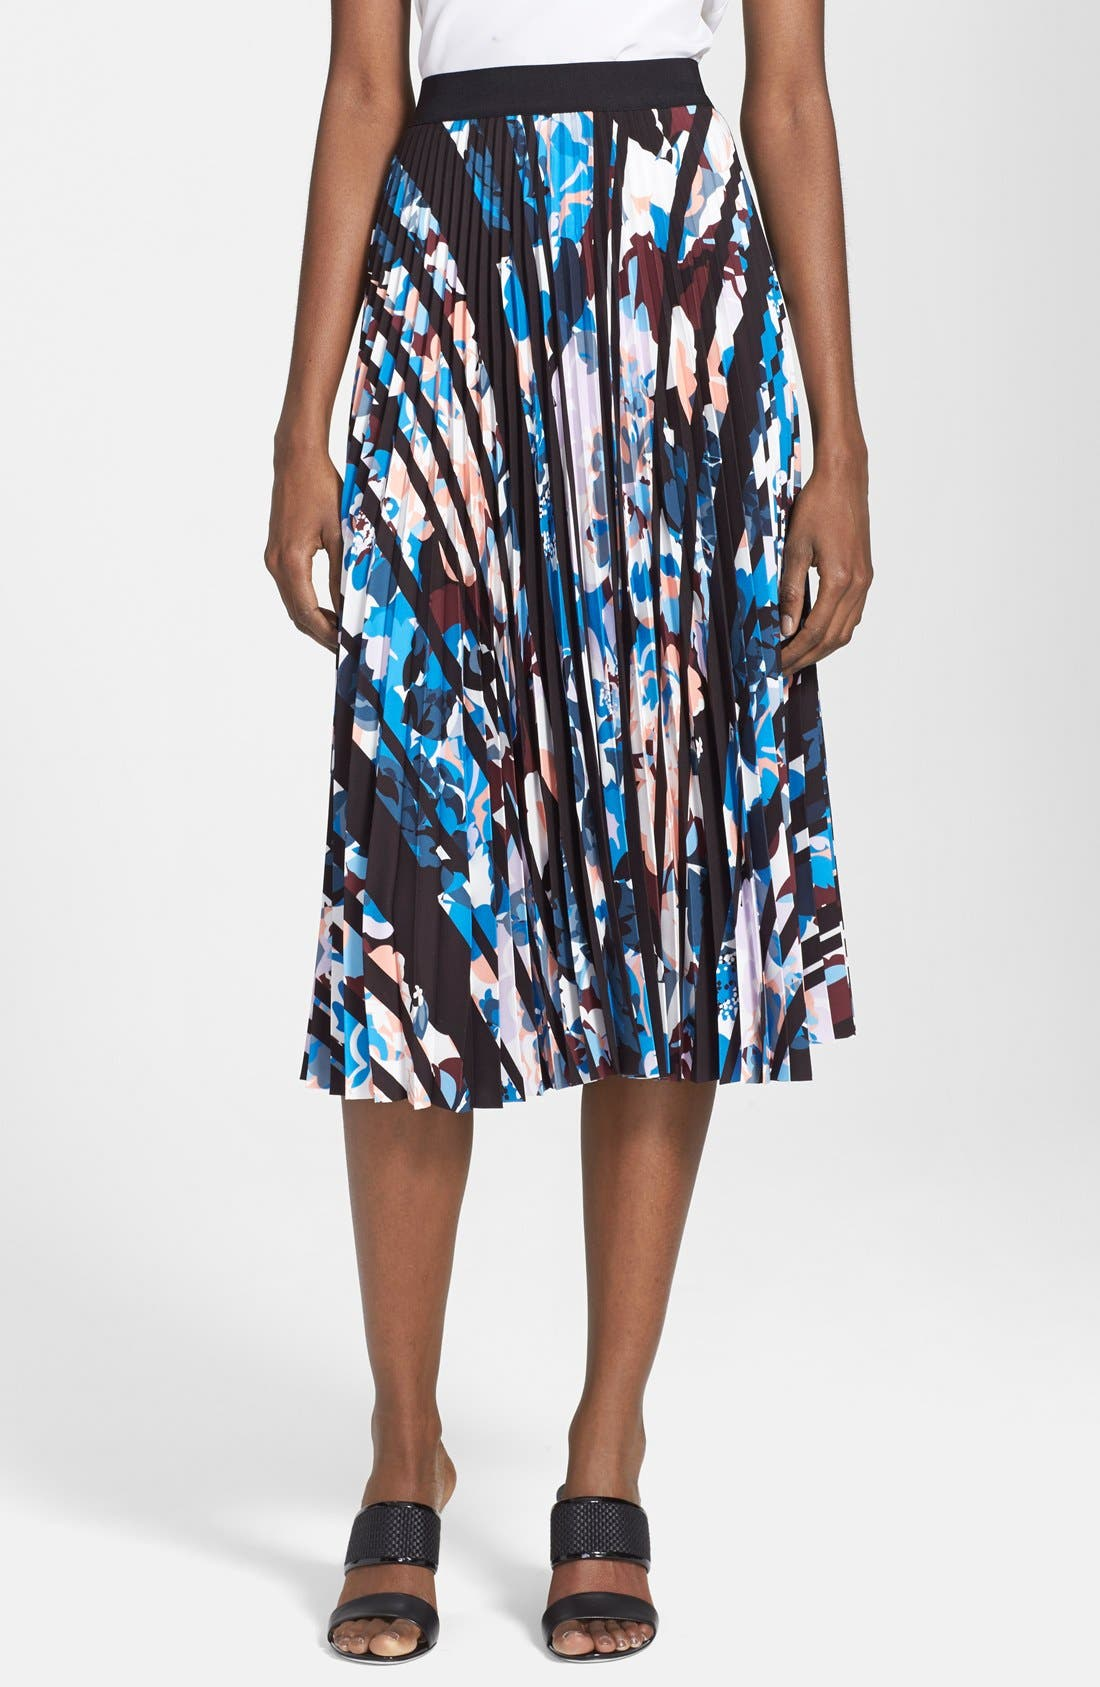 Alternate Image 1 Selected - Elizabeth and James 'Caident' Print Skirt